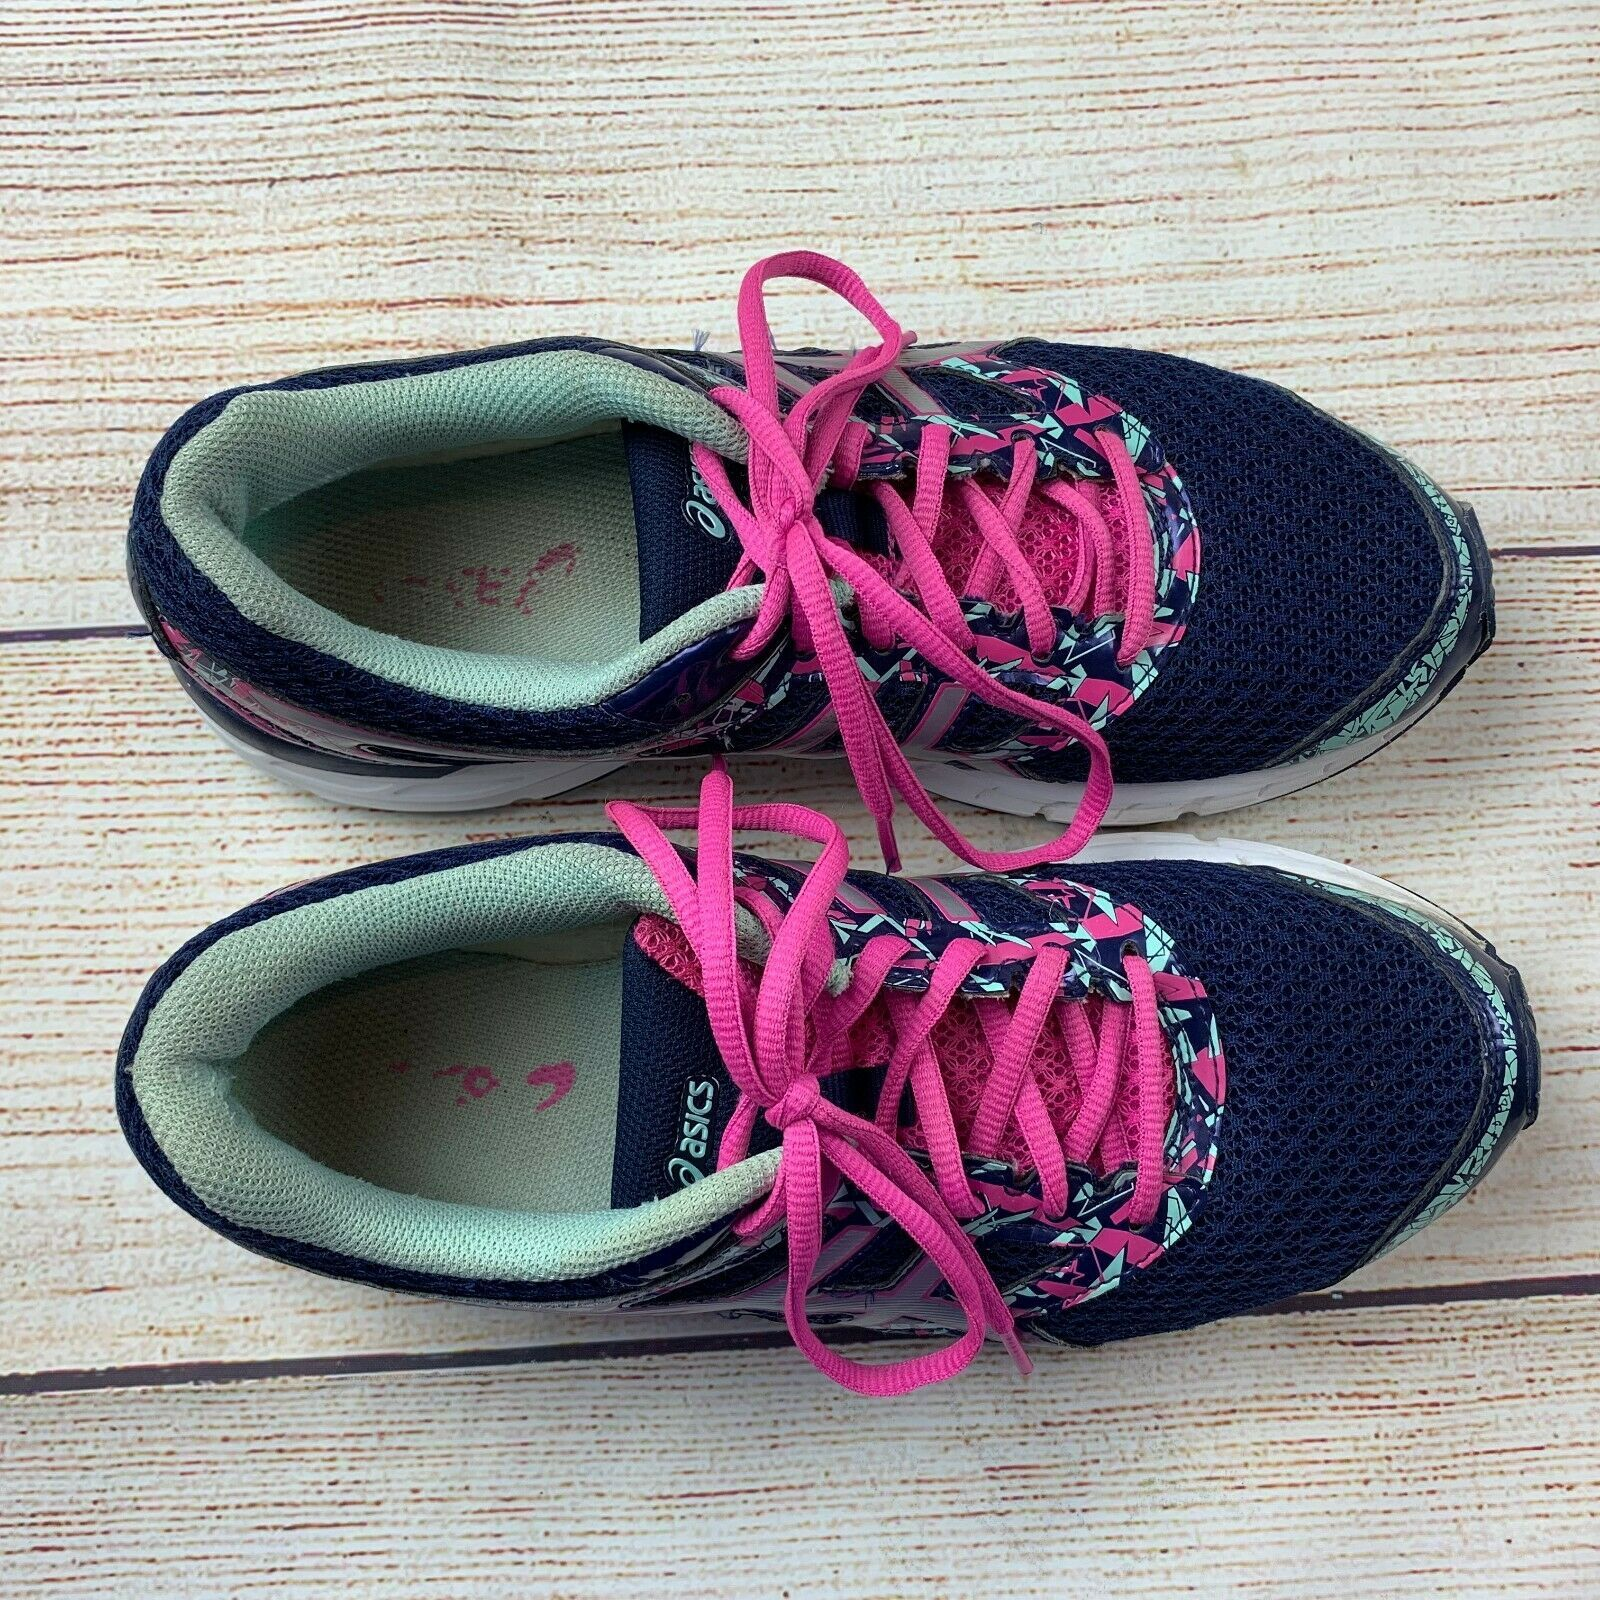 Asics womens Gel Excite 4 Navy Pink Running Shoes Sneakers 10/ 42 EUC image 8